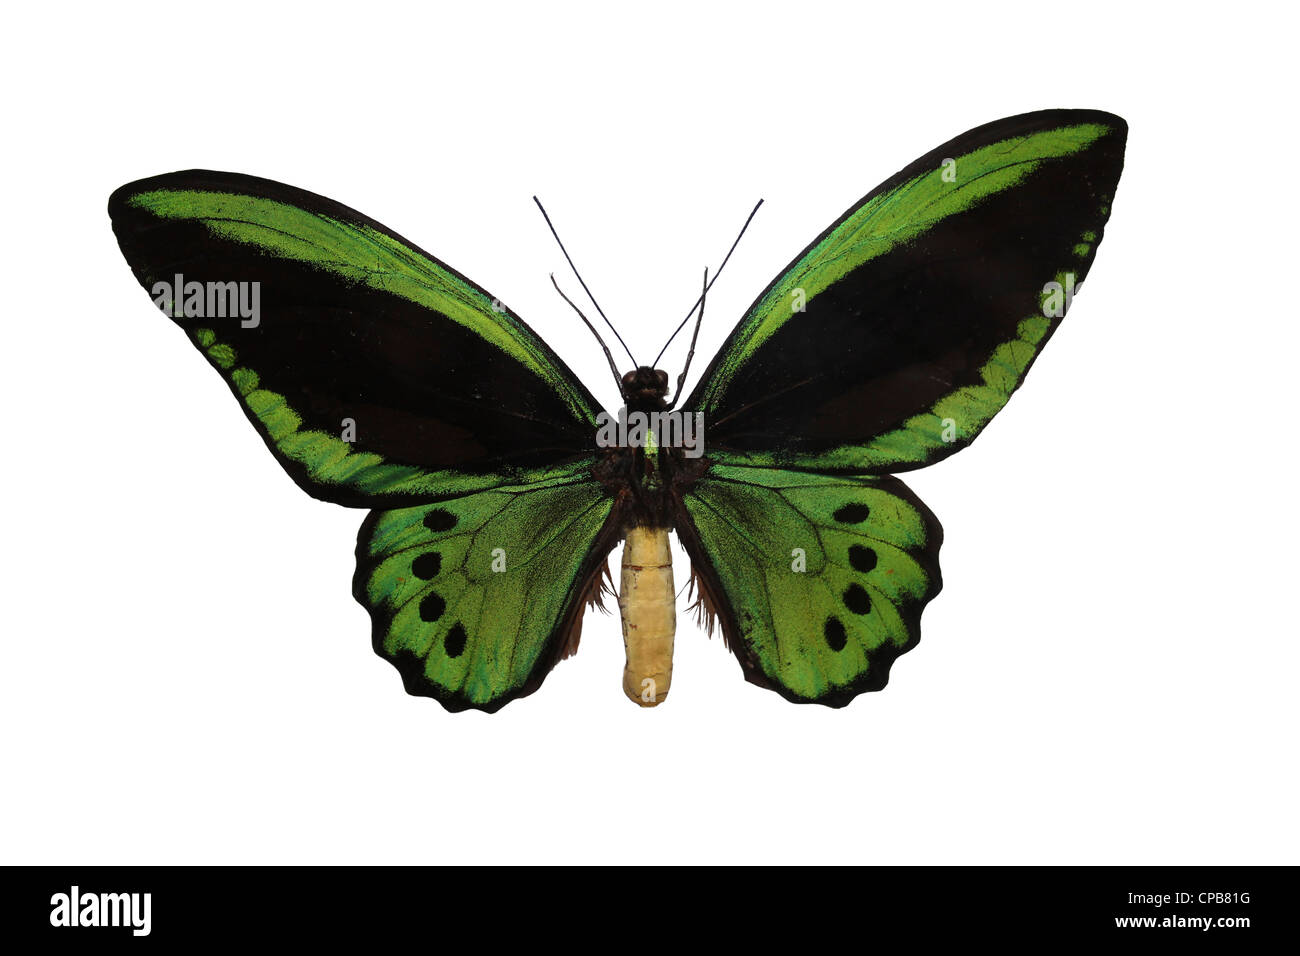 Richmond Birdwing Ornithoptera richmondia - Stock Image